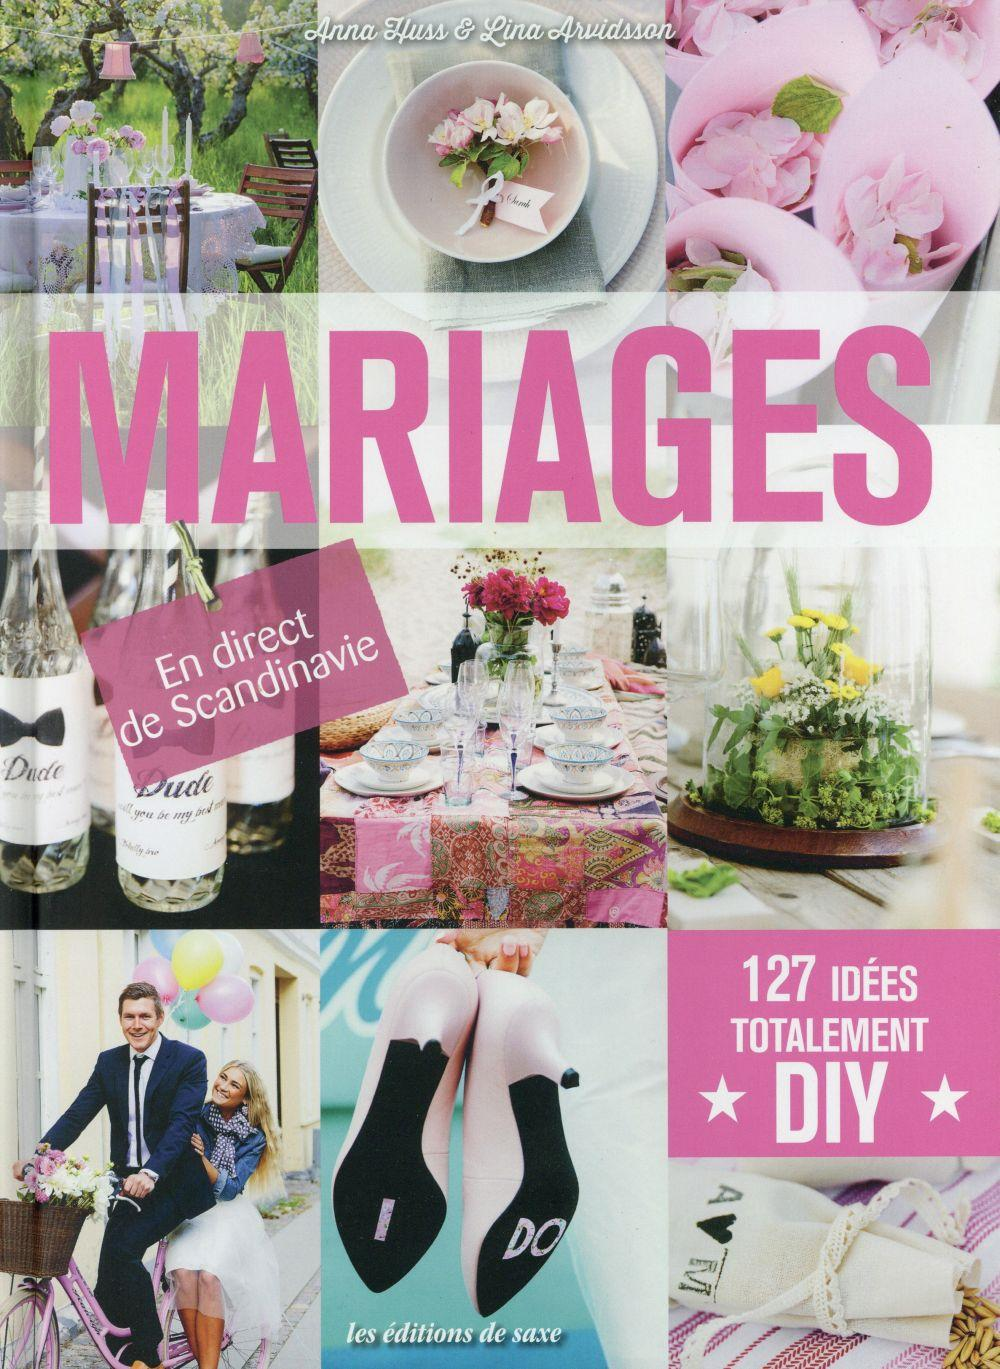 Mariages ; 127 idées totalement diy  - Anna Huss  - Lina Arvidsson